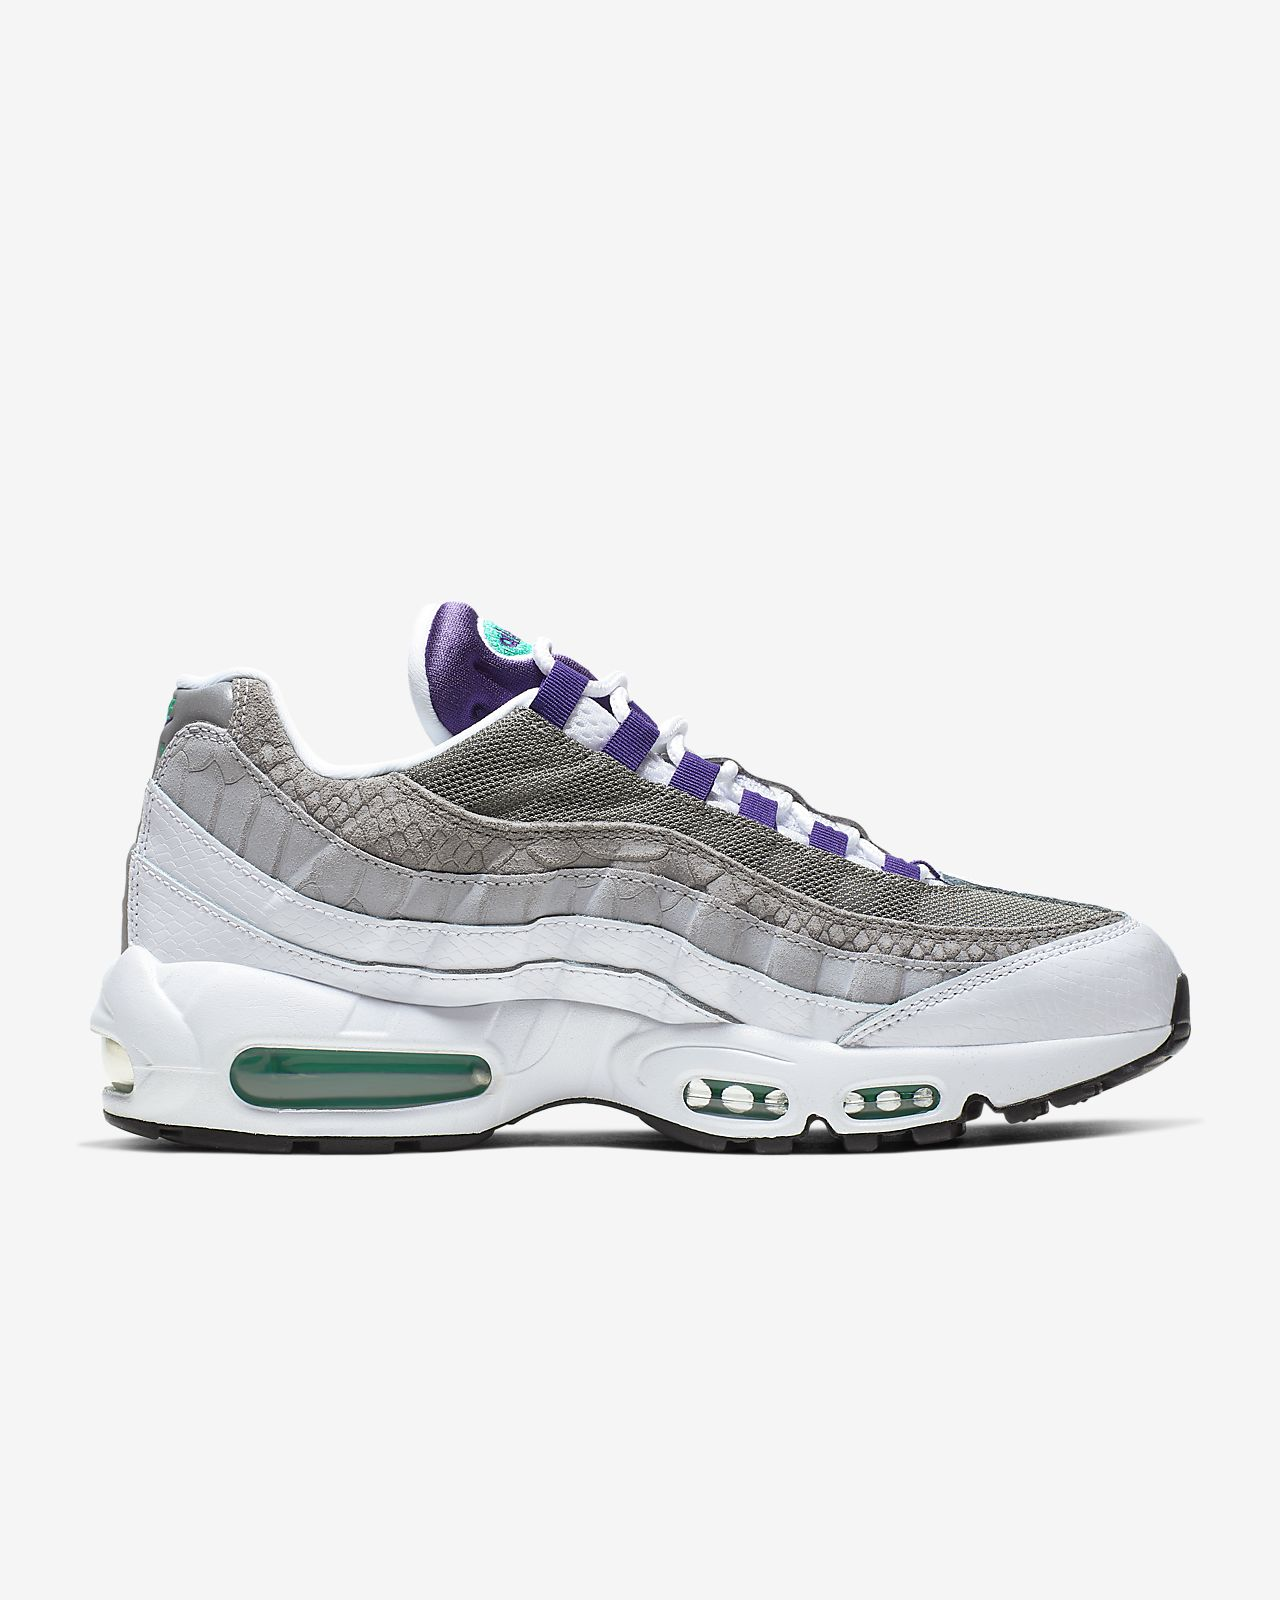 nike air max 95 white purple